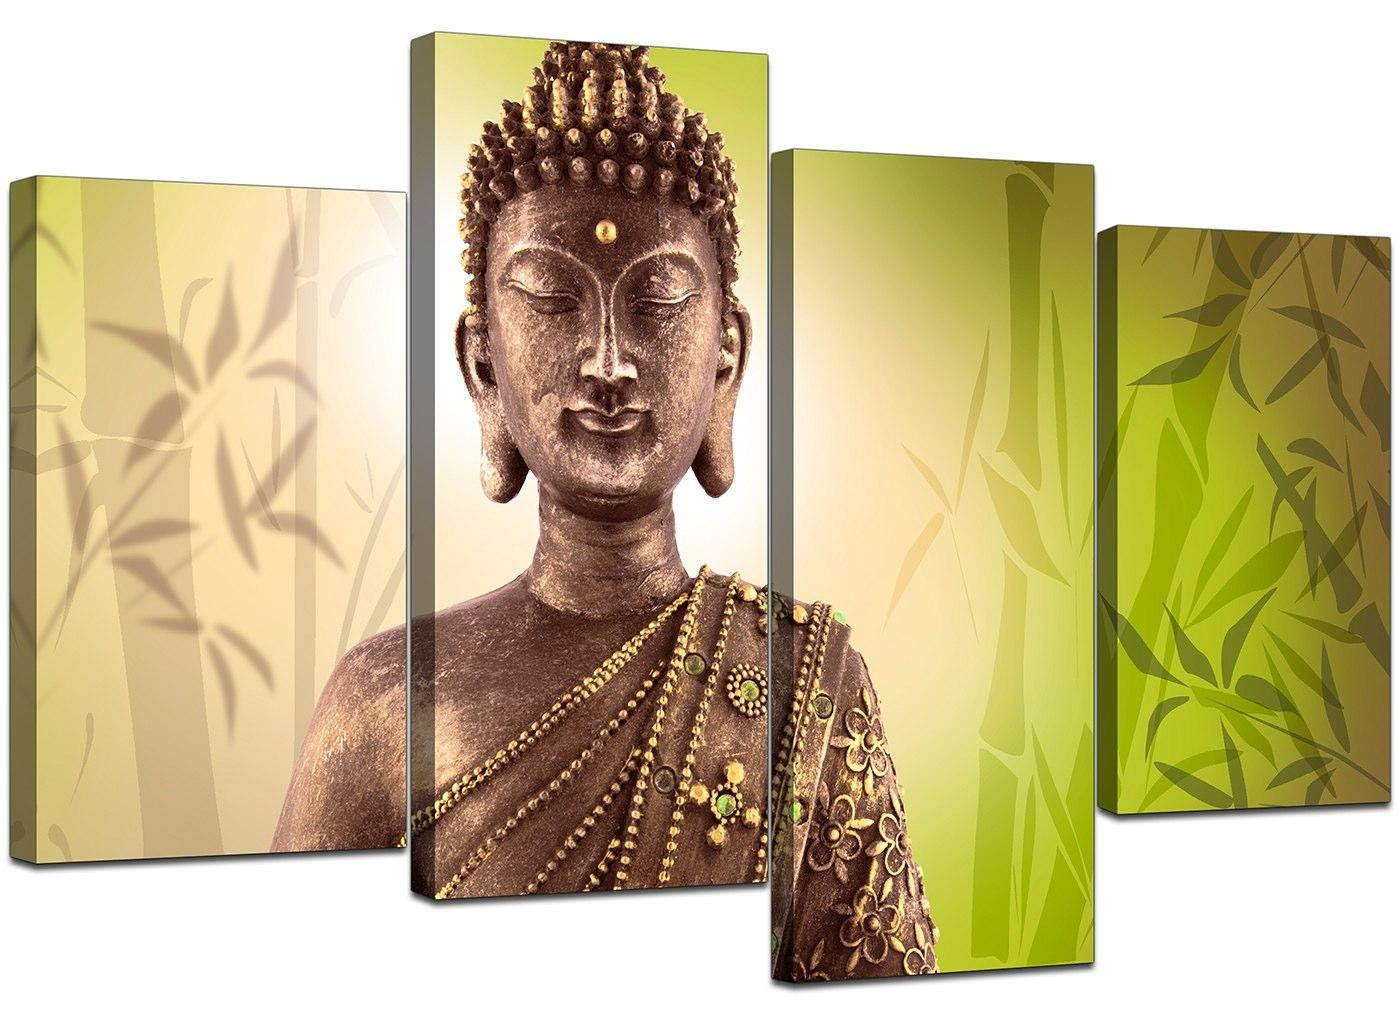 Canvas Art Of Buddha In Green For Your Living Room With Regard To Large Buddha Wall Art (Image 5 of 20)